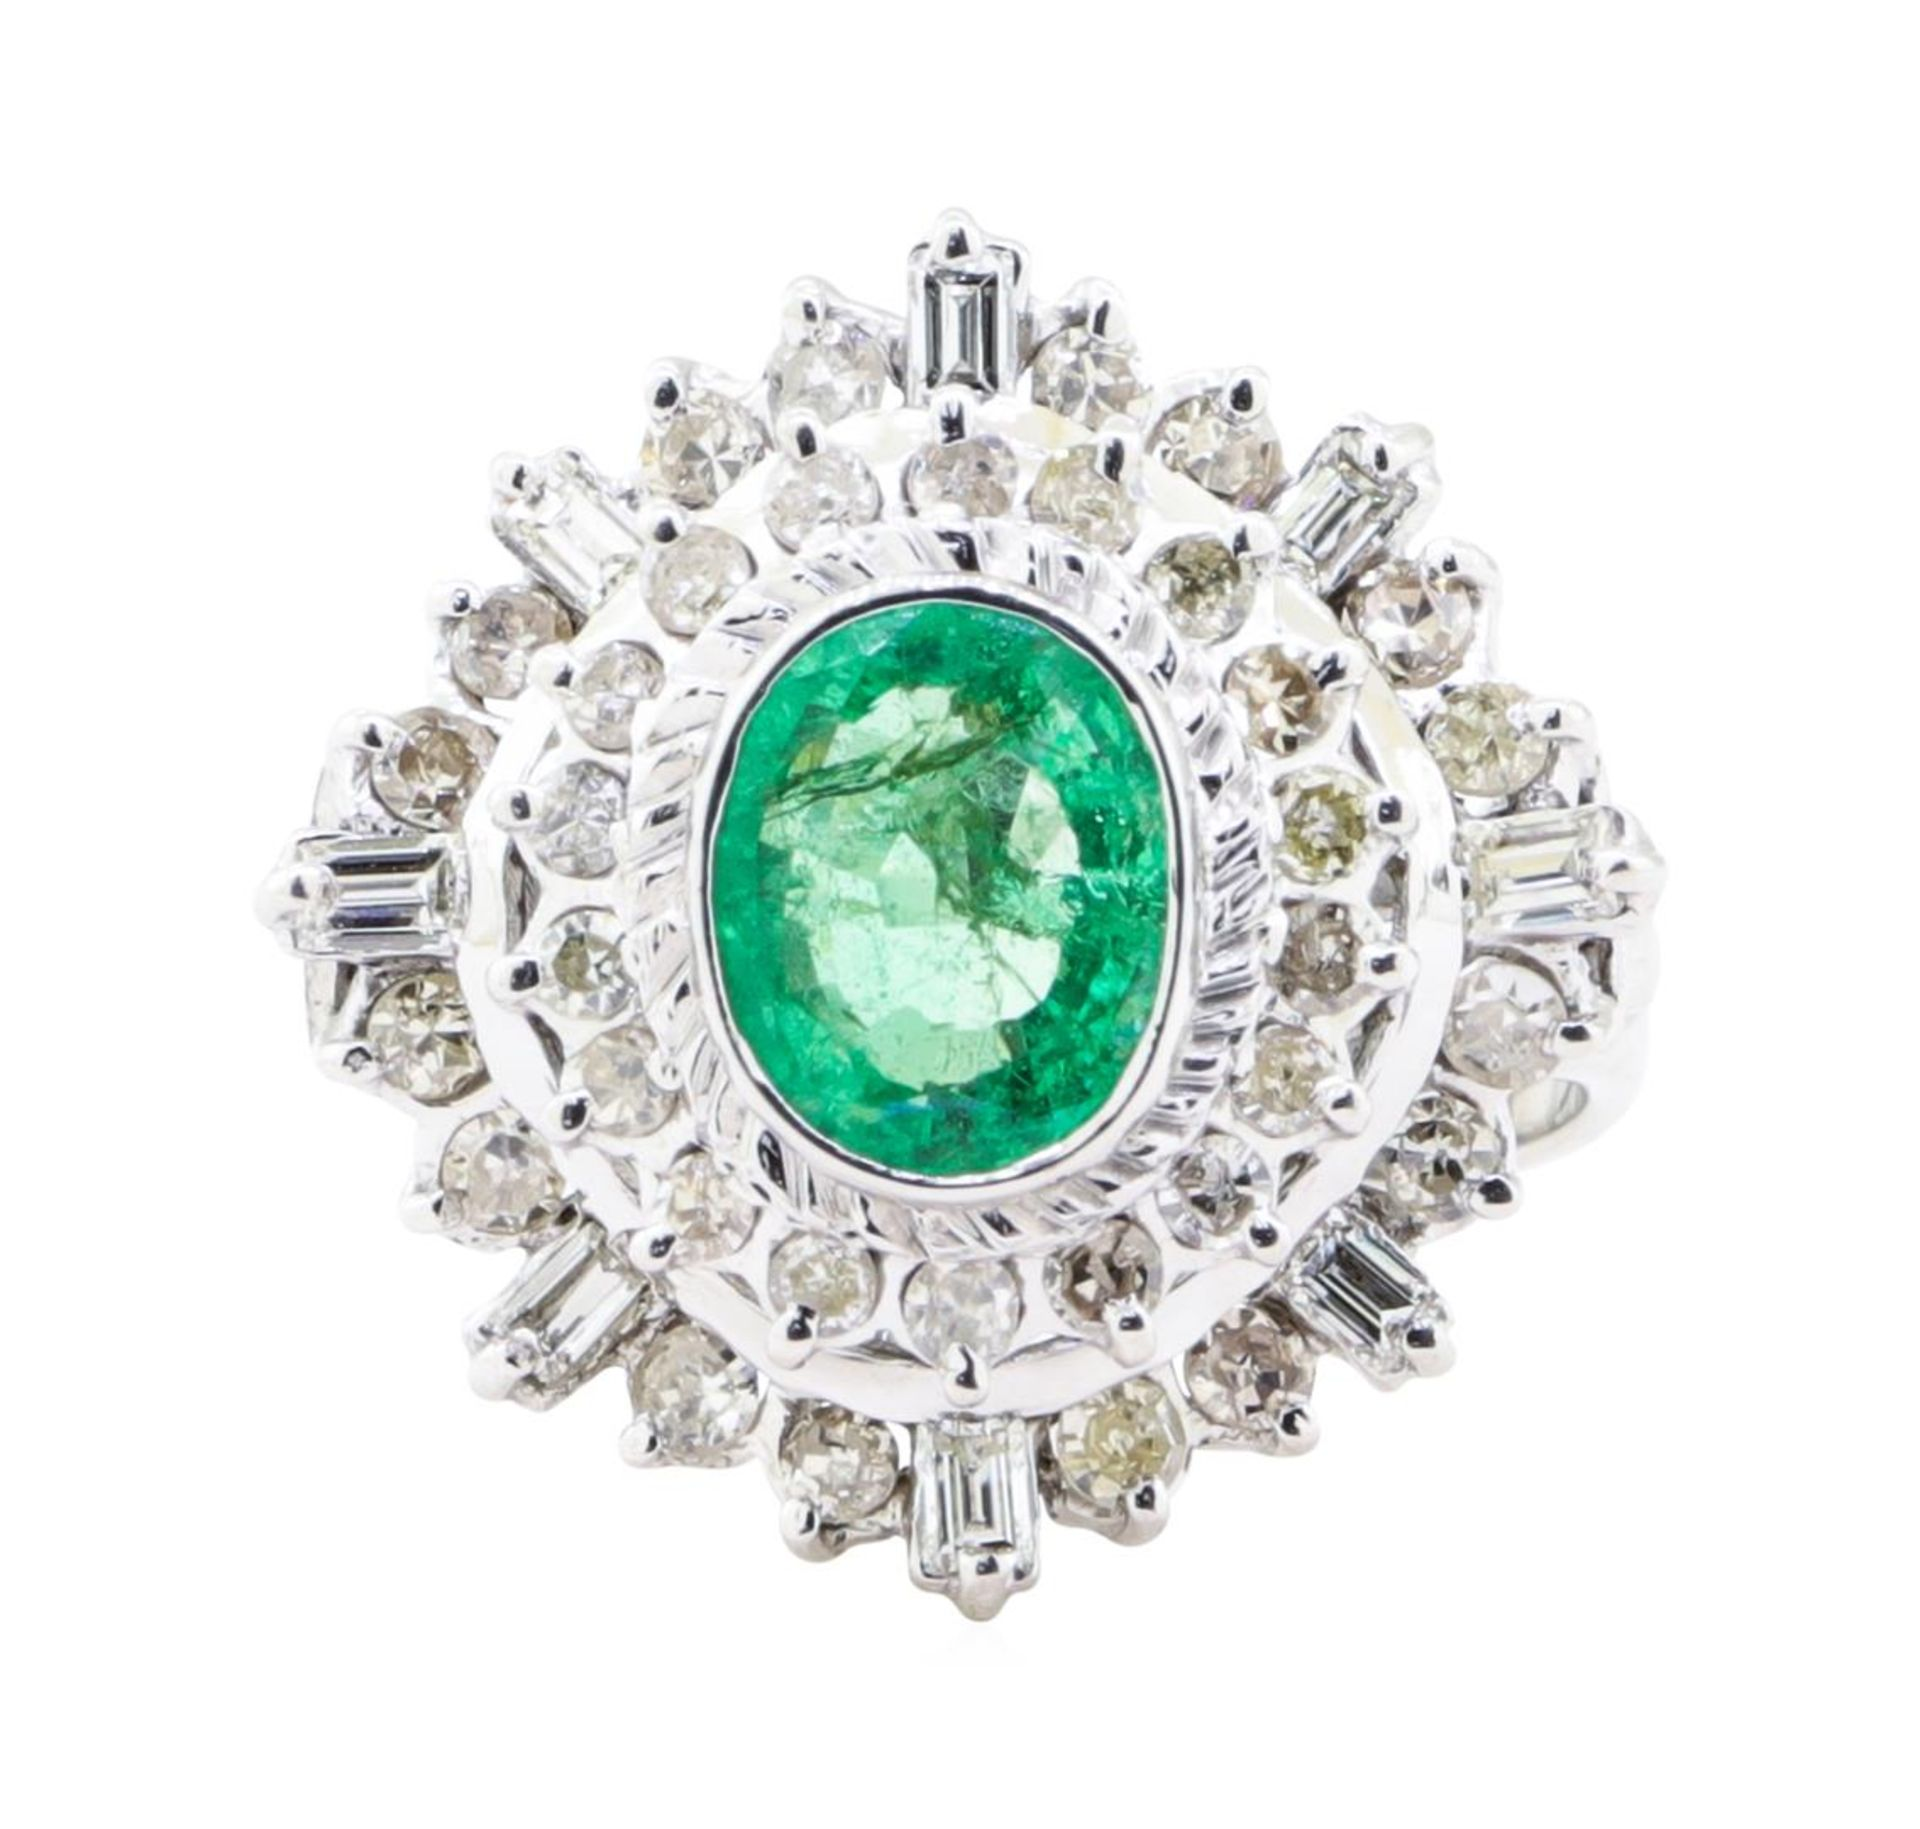 2.84 ctw Emerald And Diamond Double Halo Ring - 14KT White Gold - Image 2 of 5